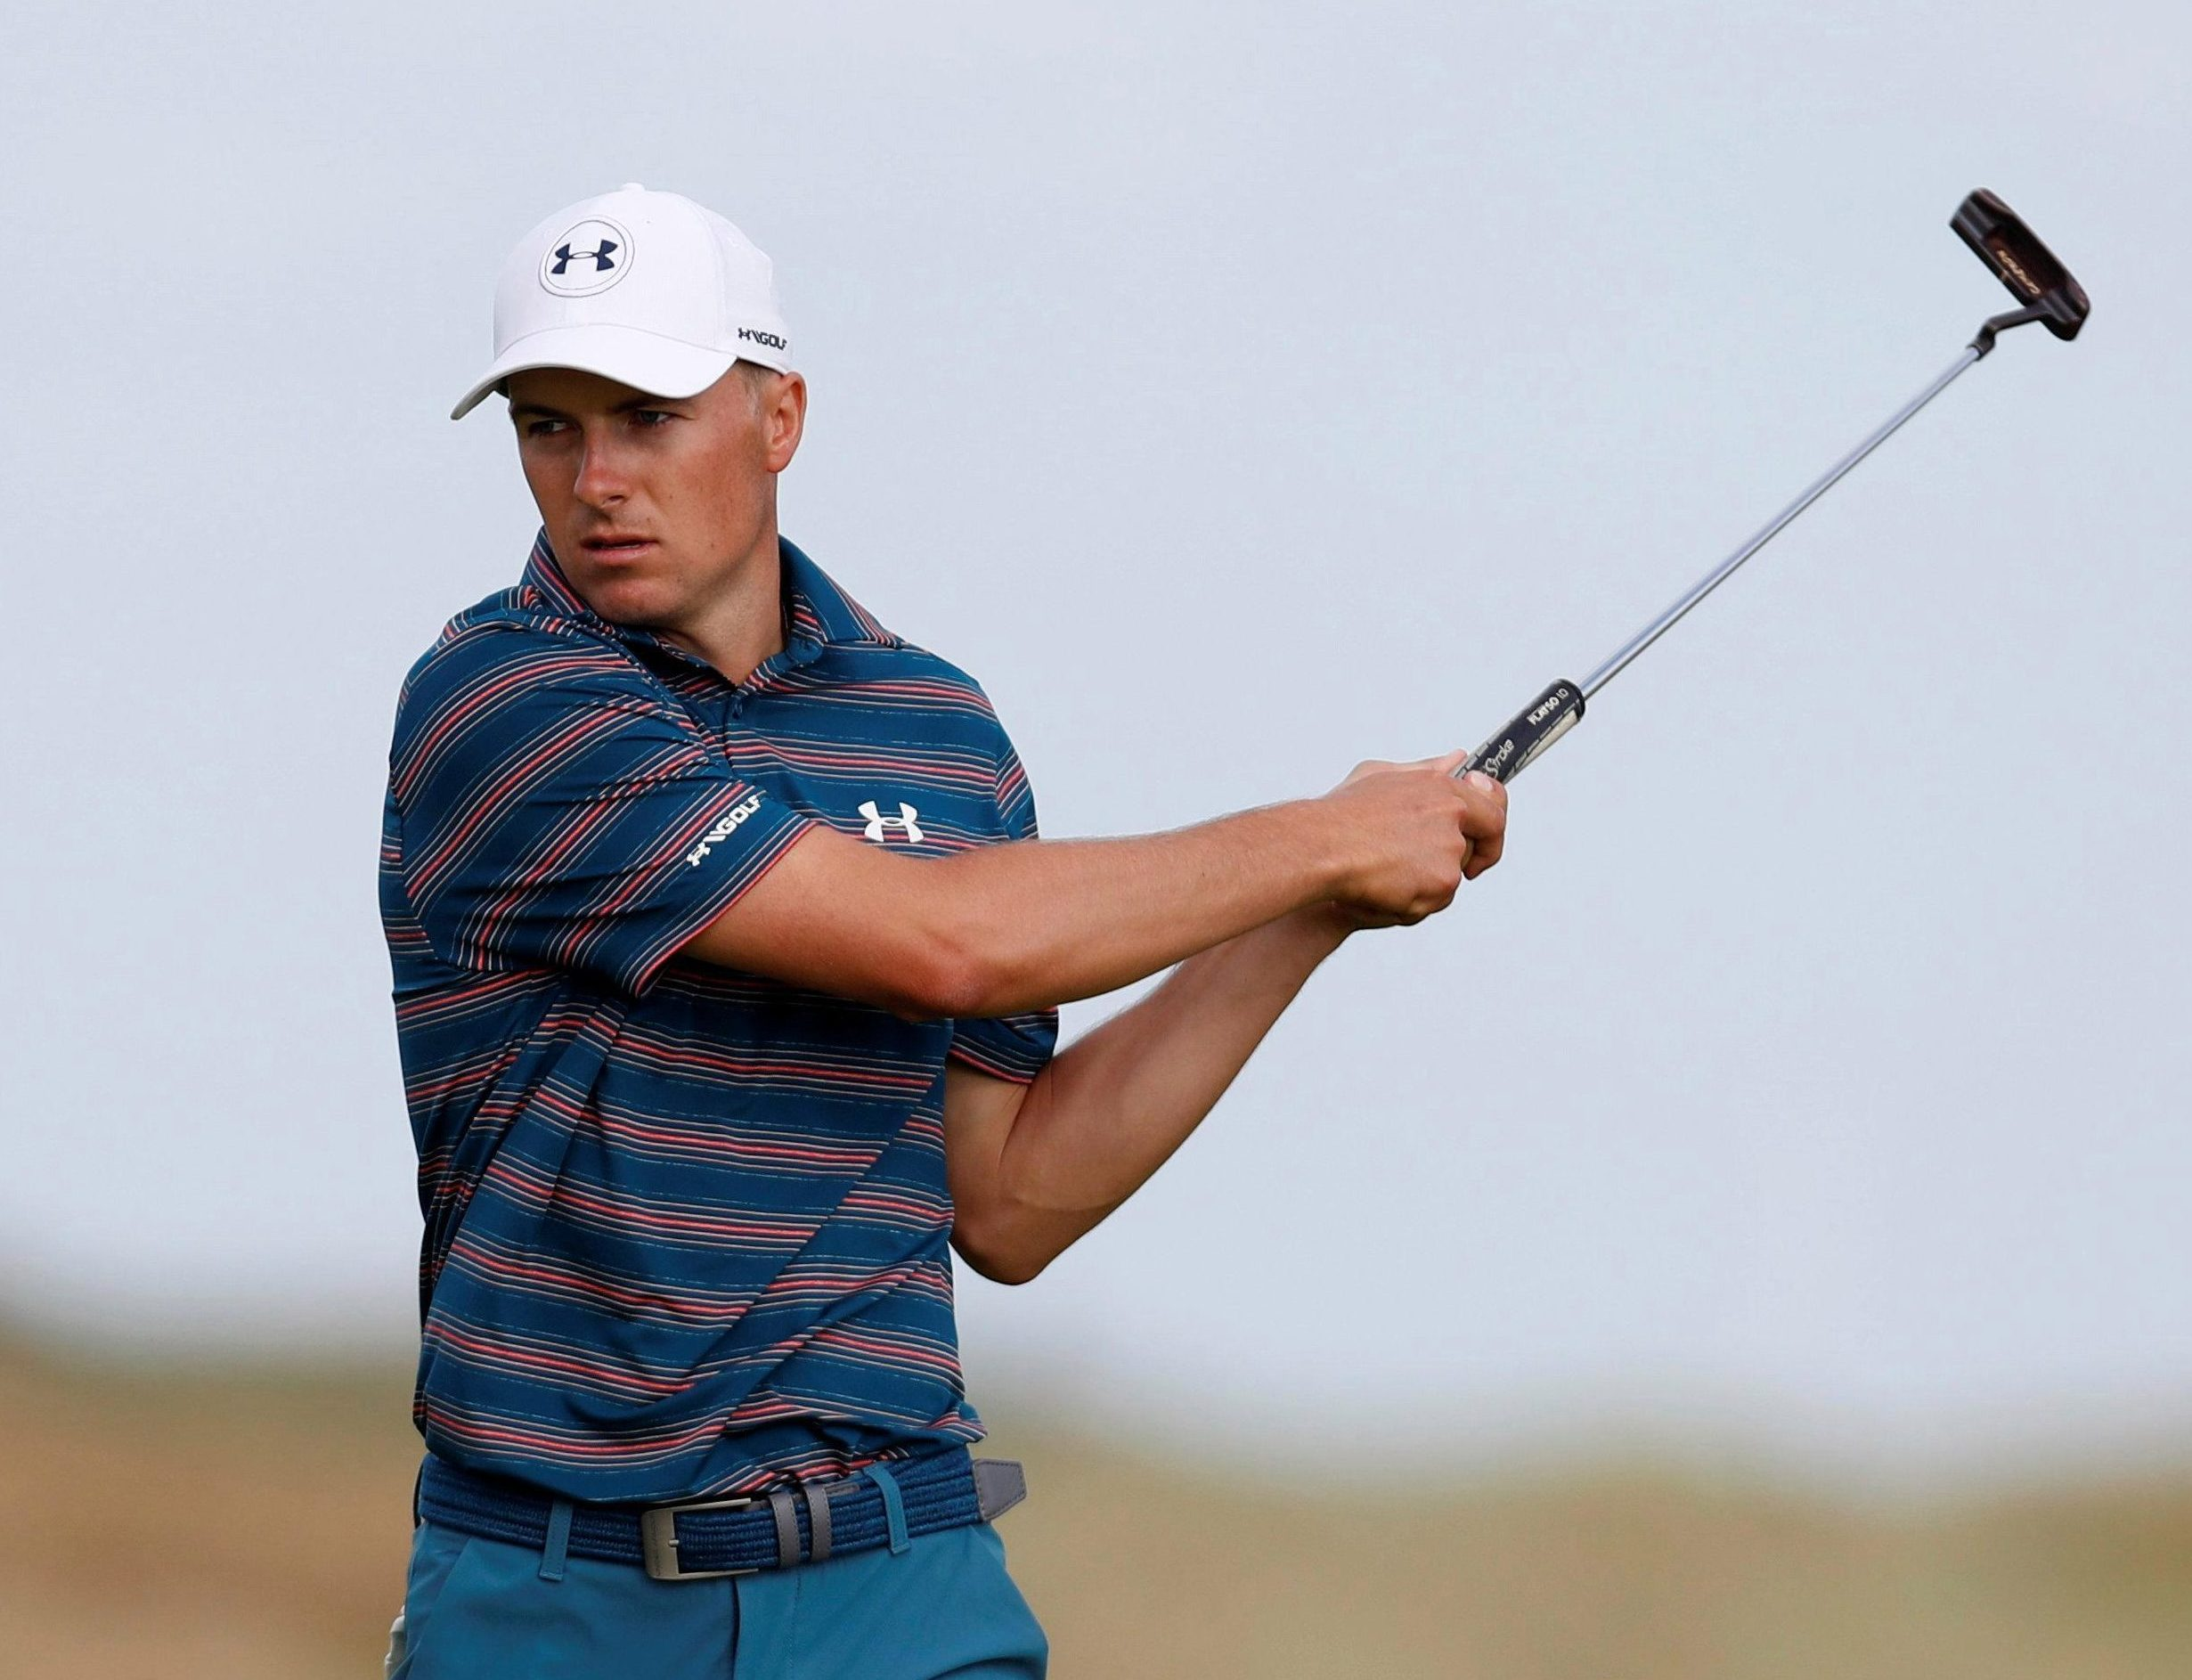 Jordan Spieth had a frustrating final round after looking a prime contender